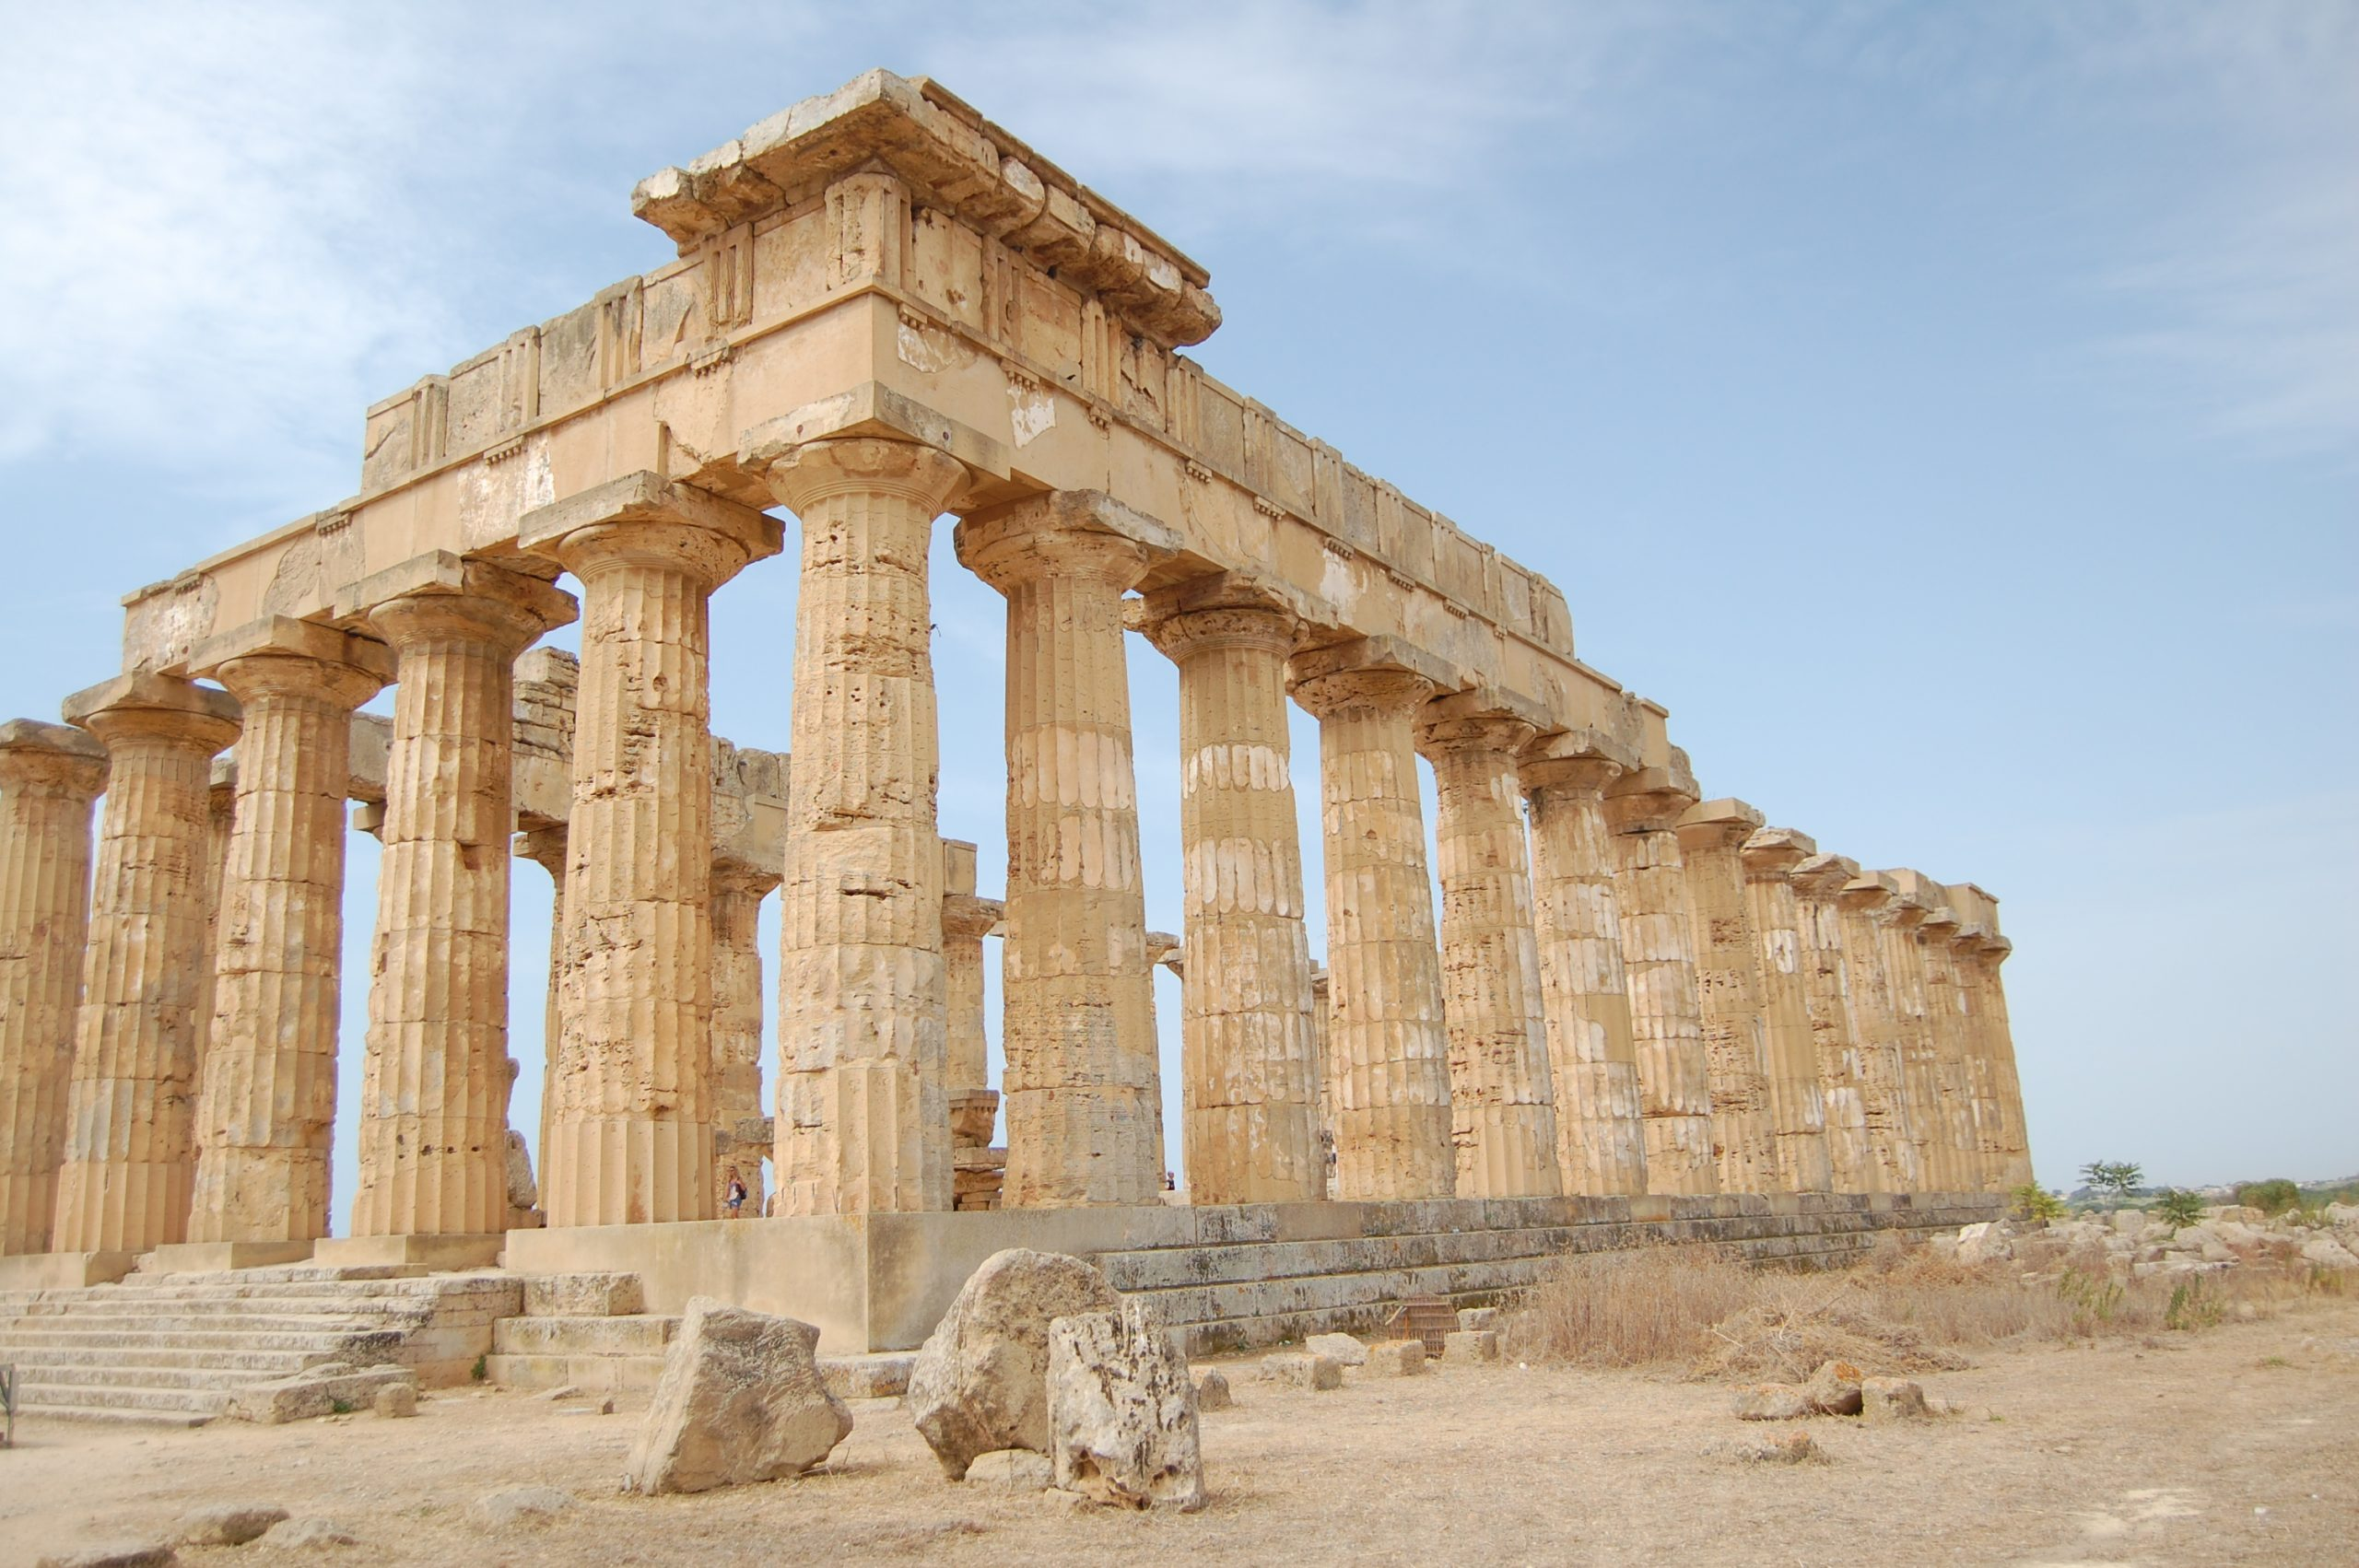 Paul's Journey - A PRAISE tour of Greece with Lynette Morgan